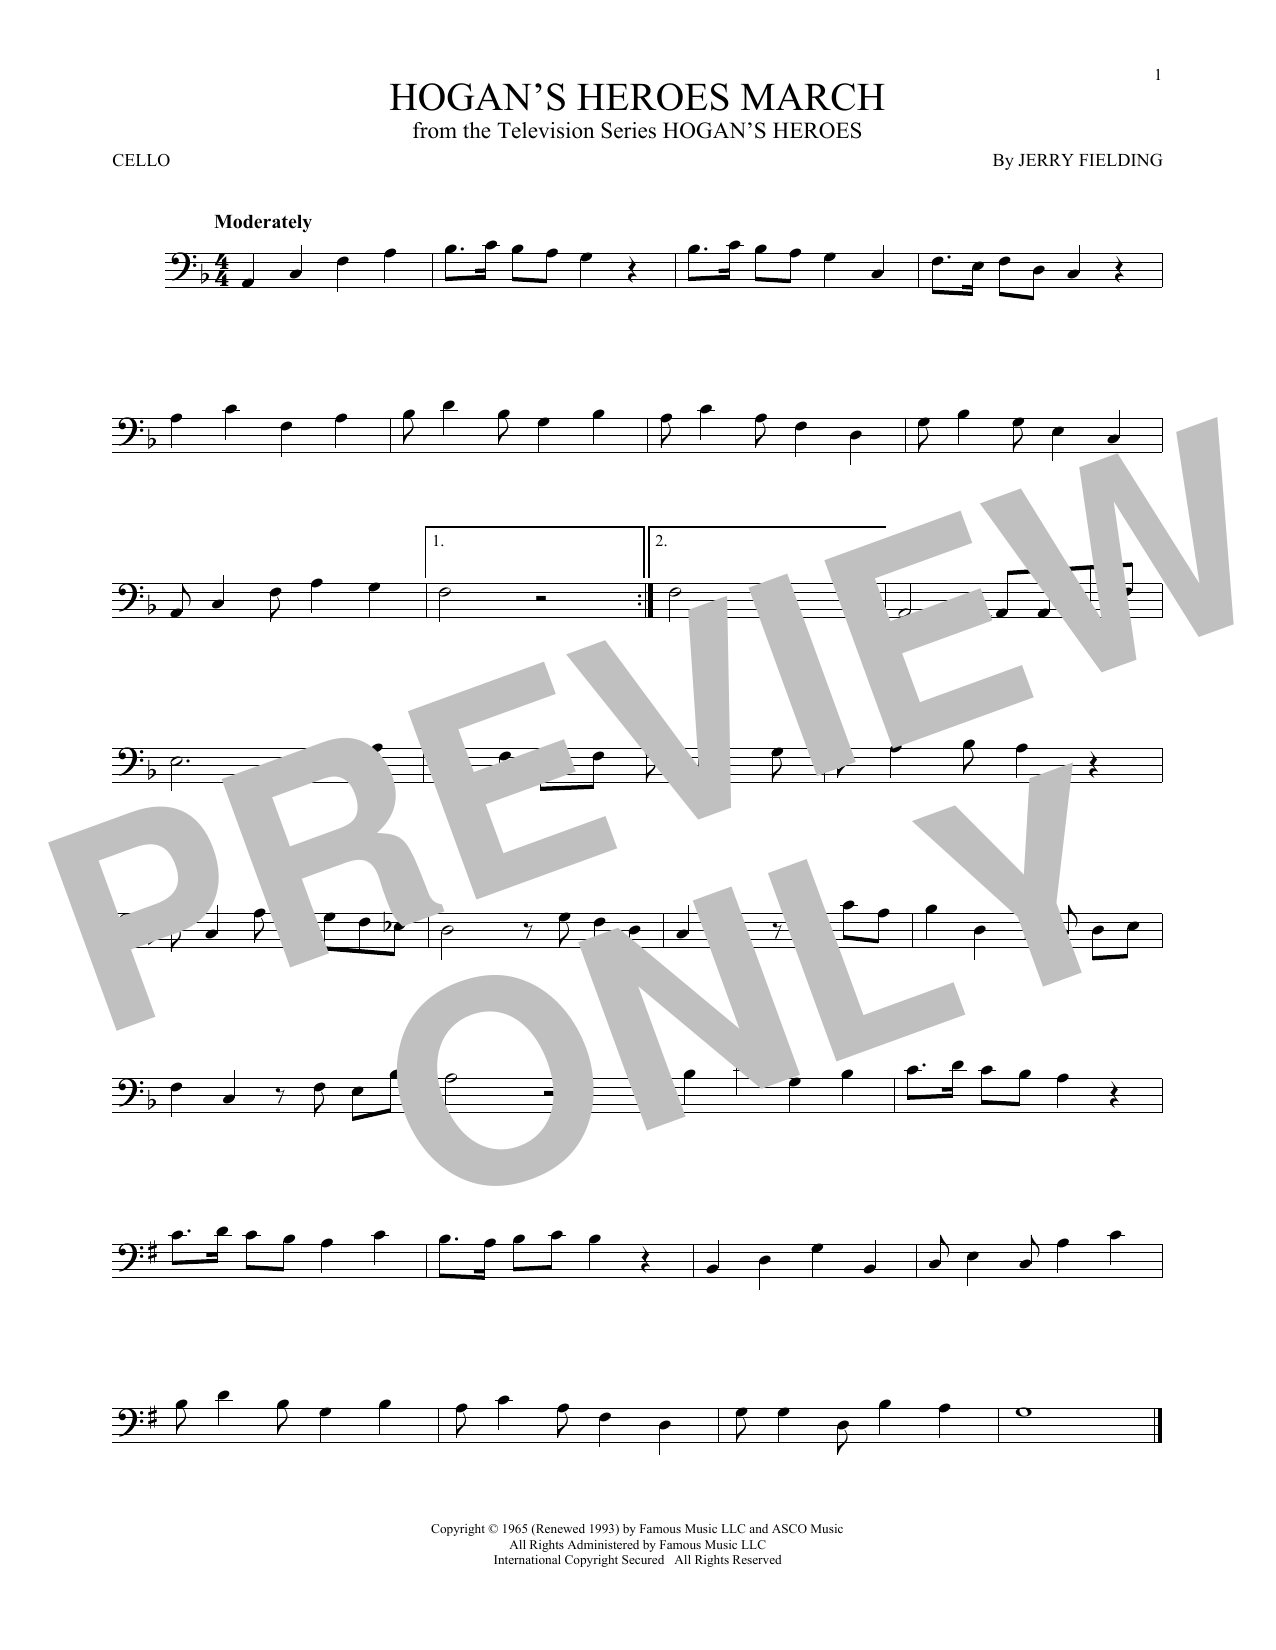 Hogan's Heroes March Sheet Music